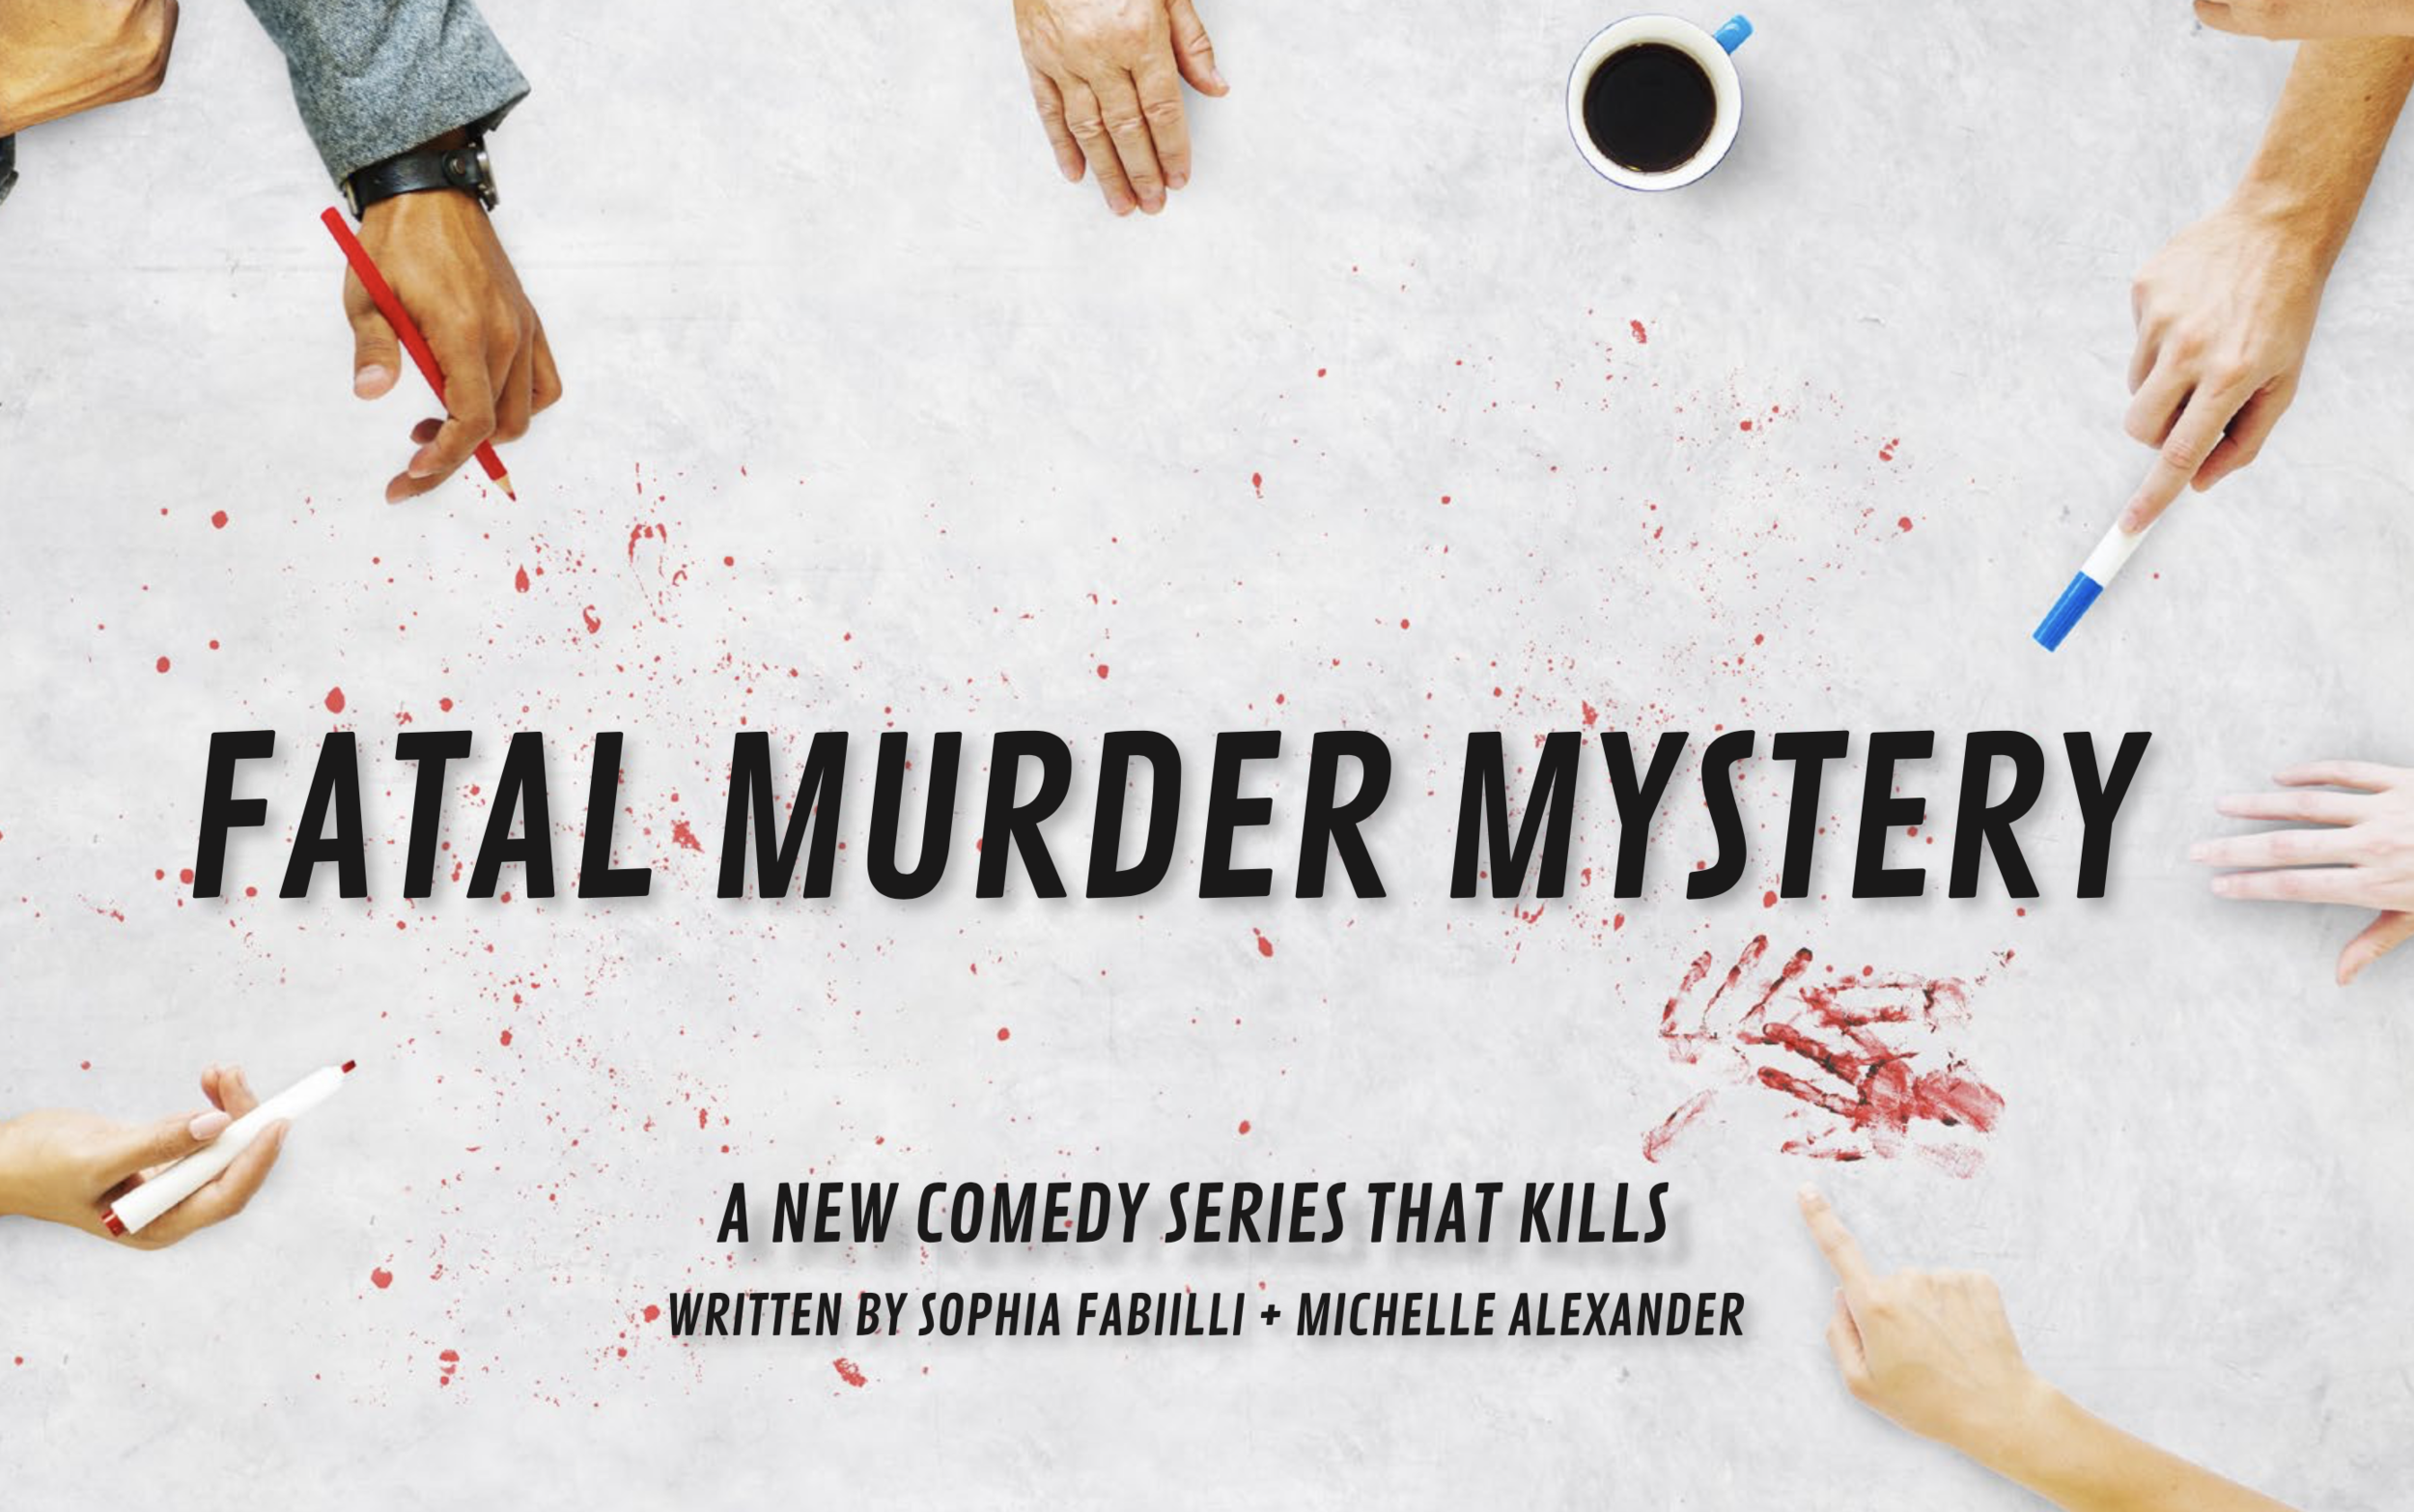 Fatal Murder - A Comedy Series by Michelle Alexander and Sophia Fabiilli, developed in collaboration with Shaftesbury Entertainment*Just for Laughs Festival - International Pitch Competition Finalist, 2017*Banff World Media Festival - AMP Competition Winner, 2016When people start dying for real at a murder mystery party organized by a neurotic young woman, a tenacious stranger arrives out of the blue to help her crack the case. Kills, thrills, and a bloody three-hole-punch - welcome to the weirdest office party of all time.